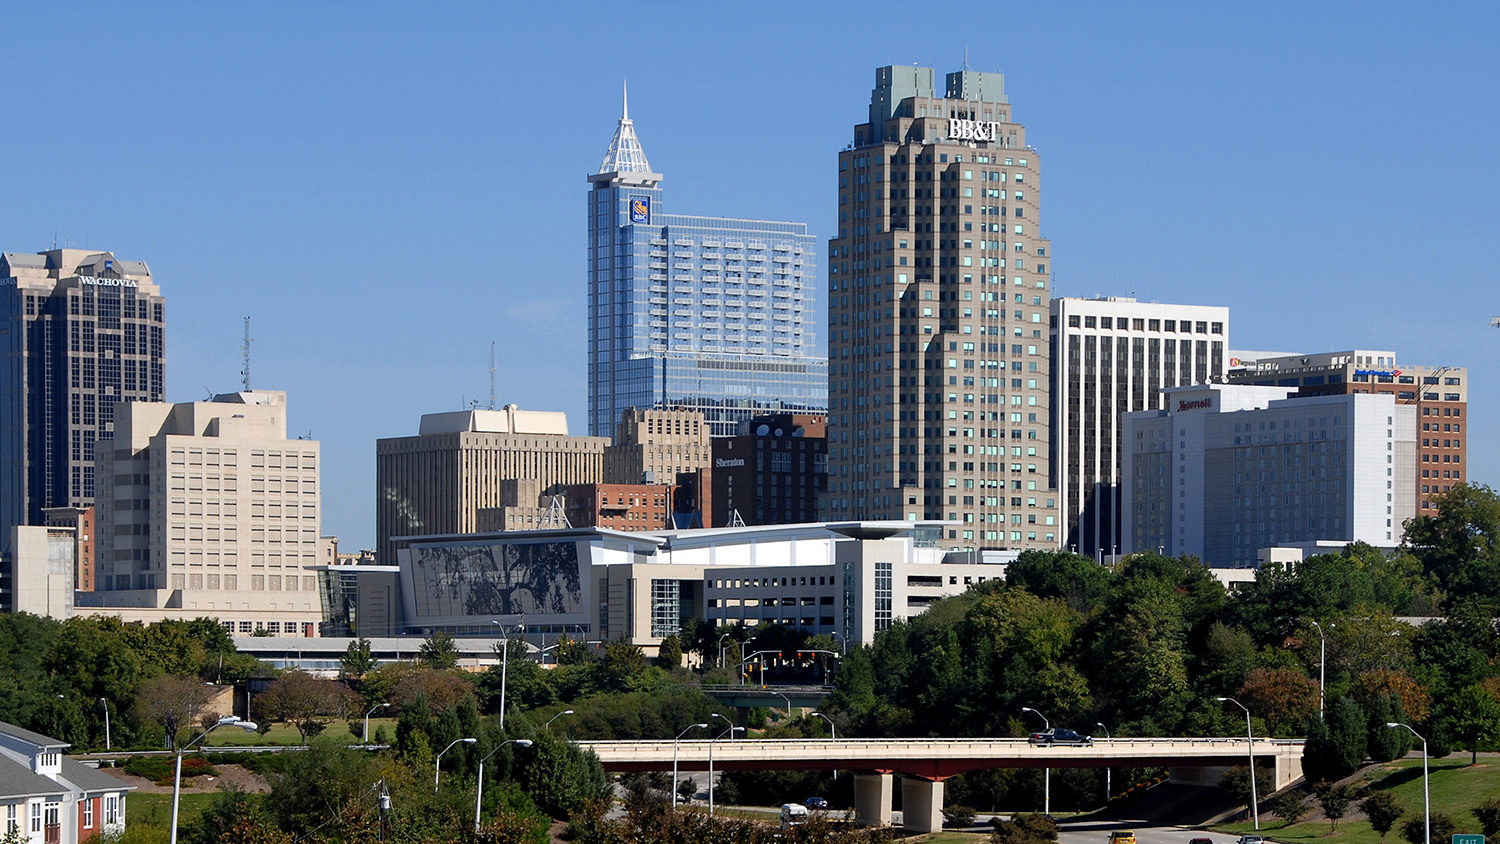 Downtown Raleigh skyline on a bright day